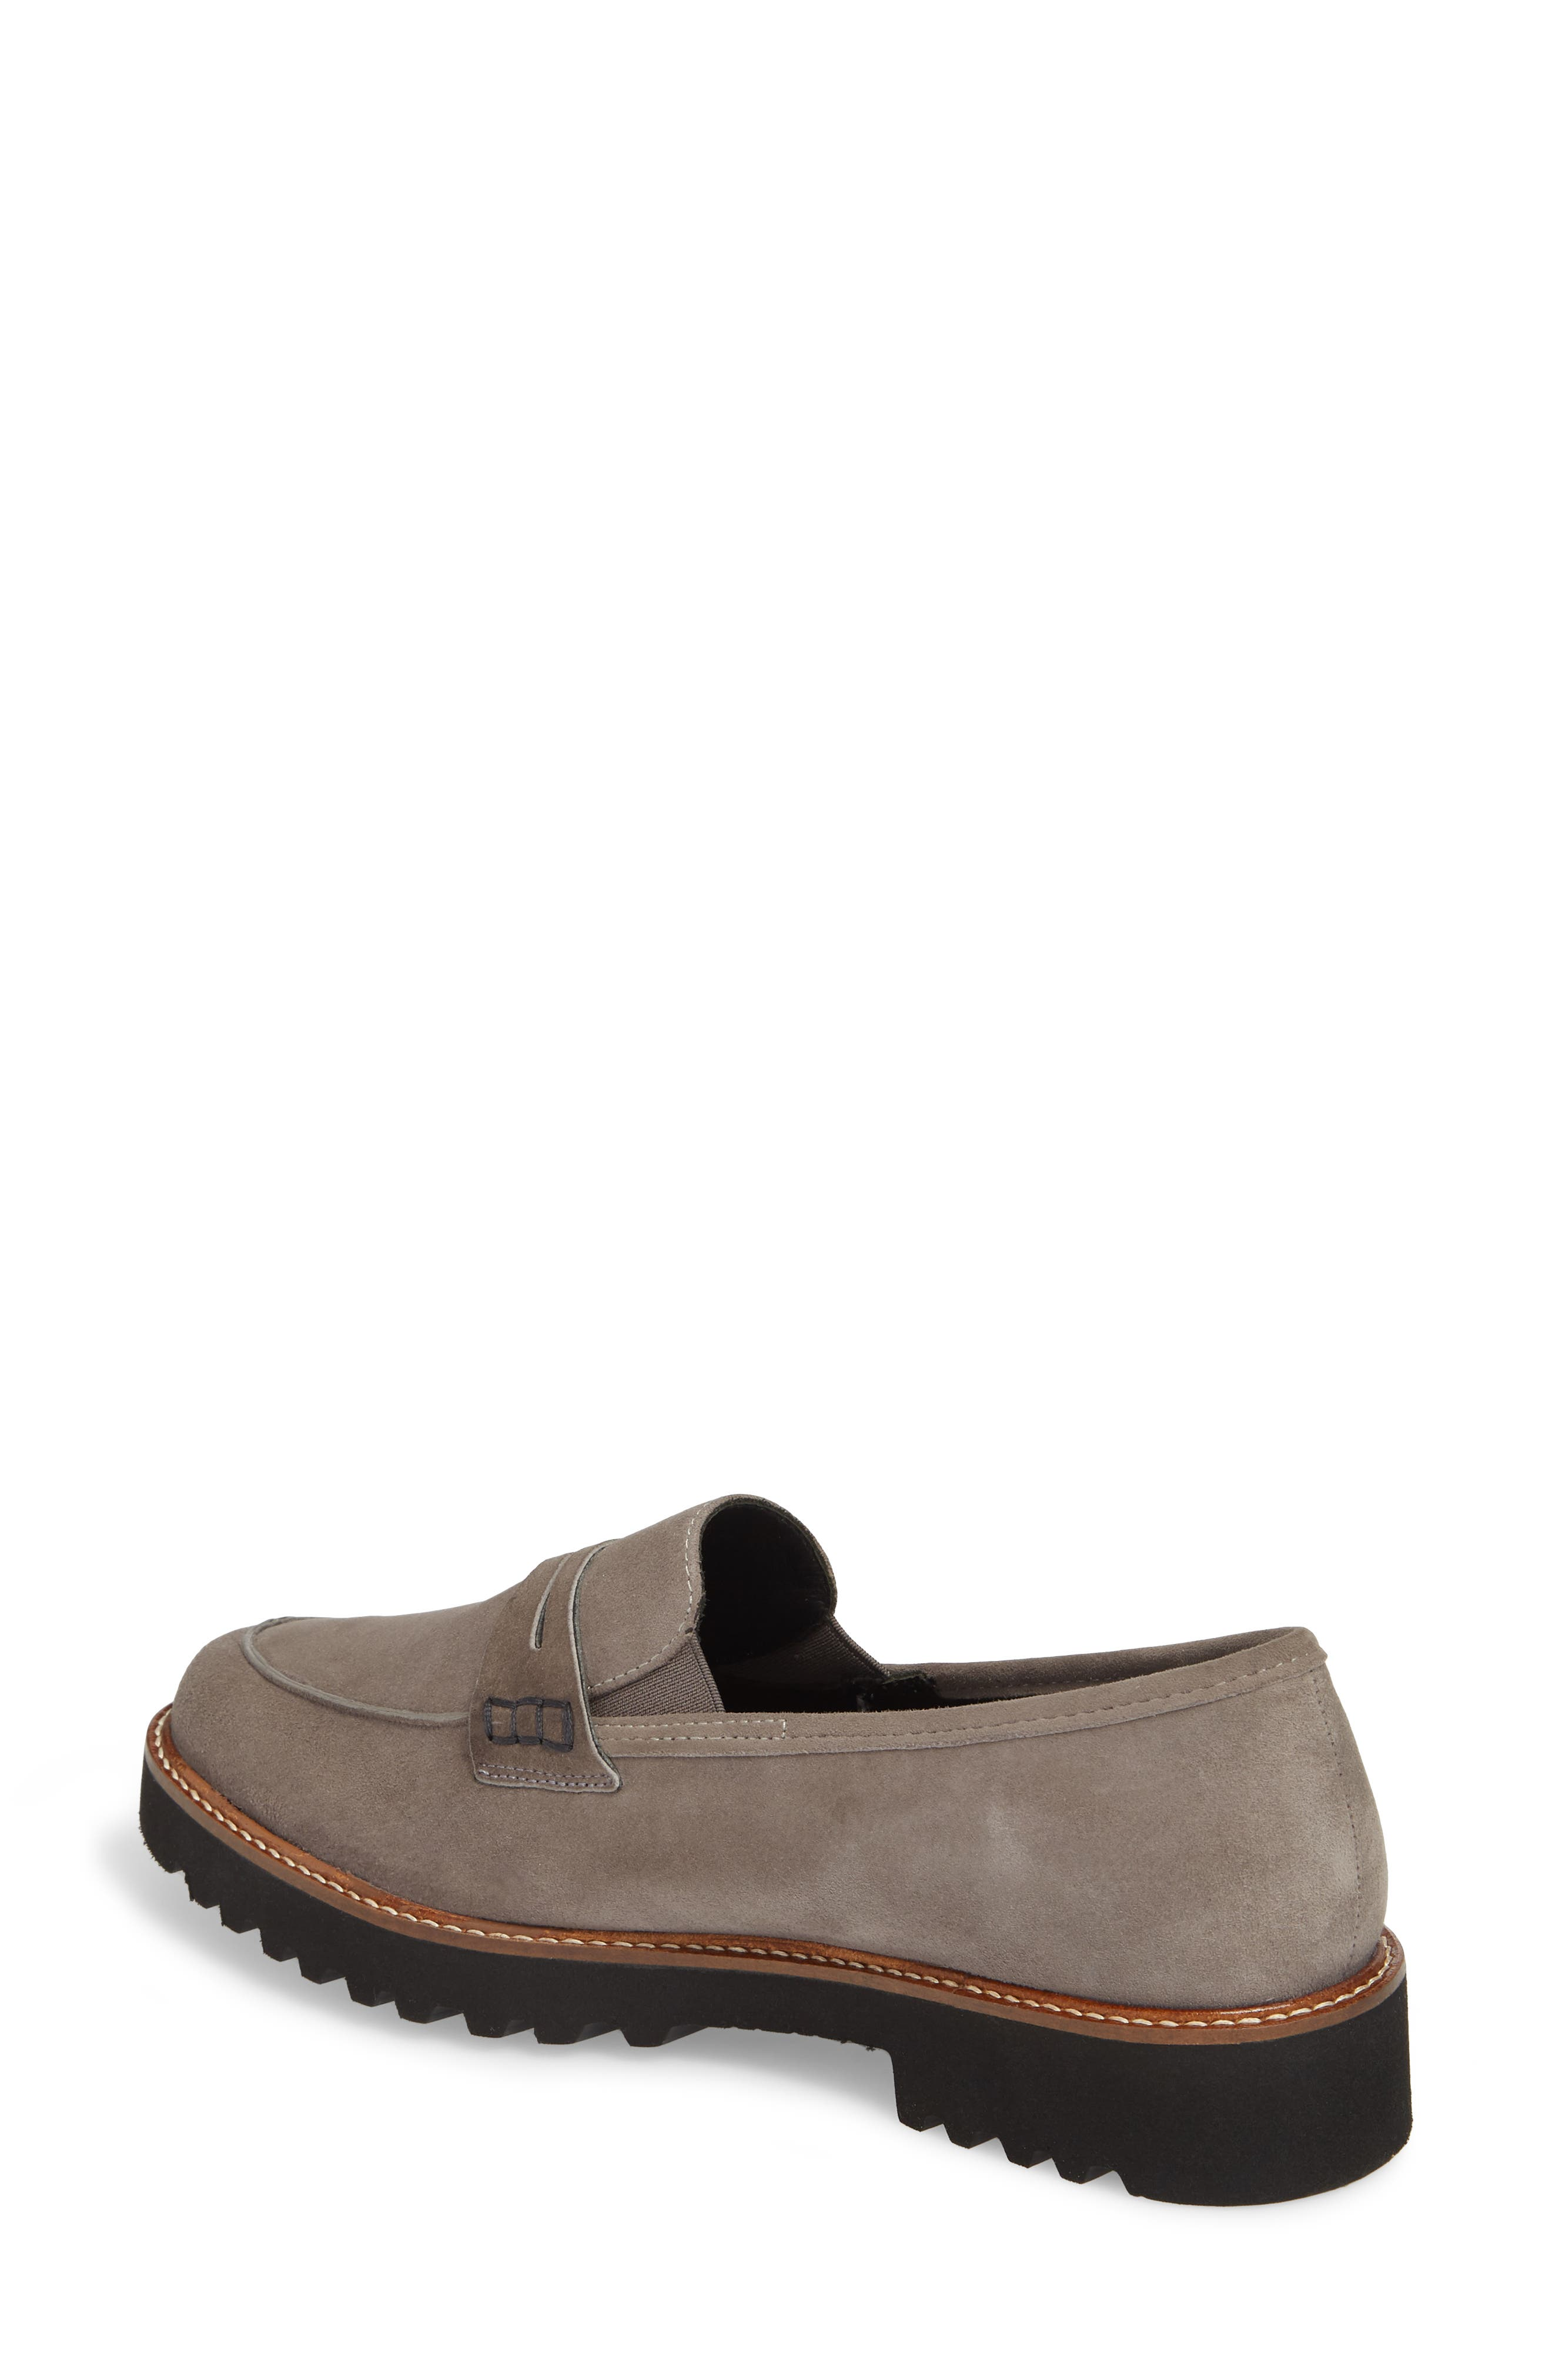 MEPHISTO, Sidney Penny Loafer, Alternate thumbnail 2, color, GREY SUEDE